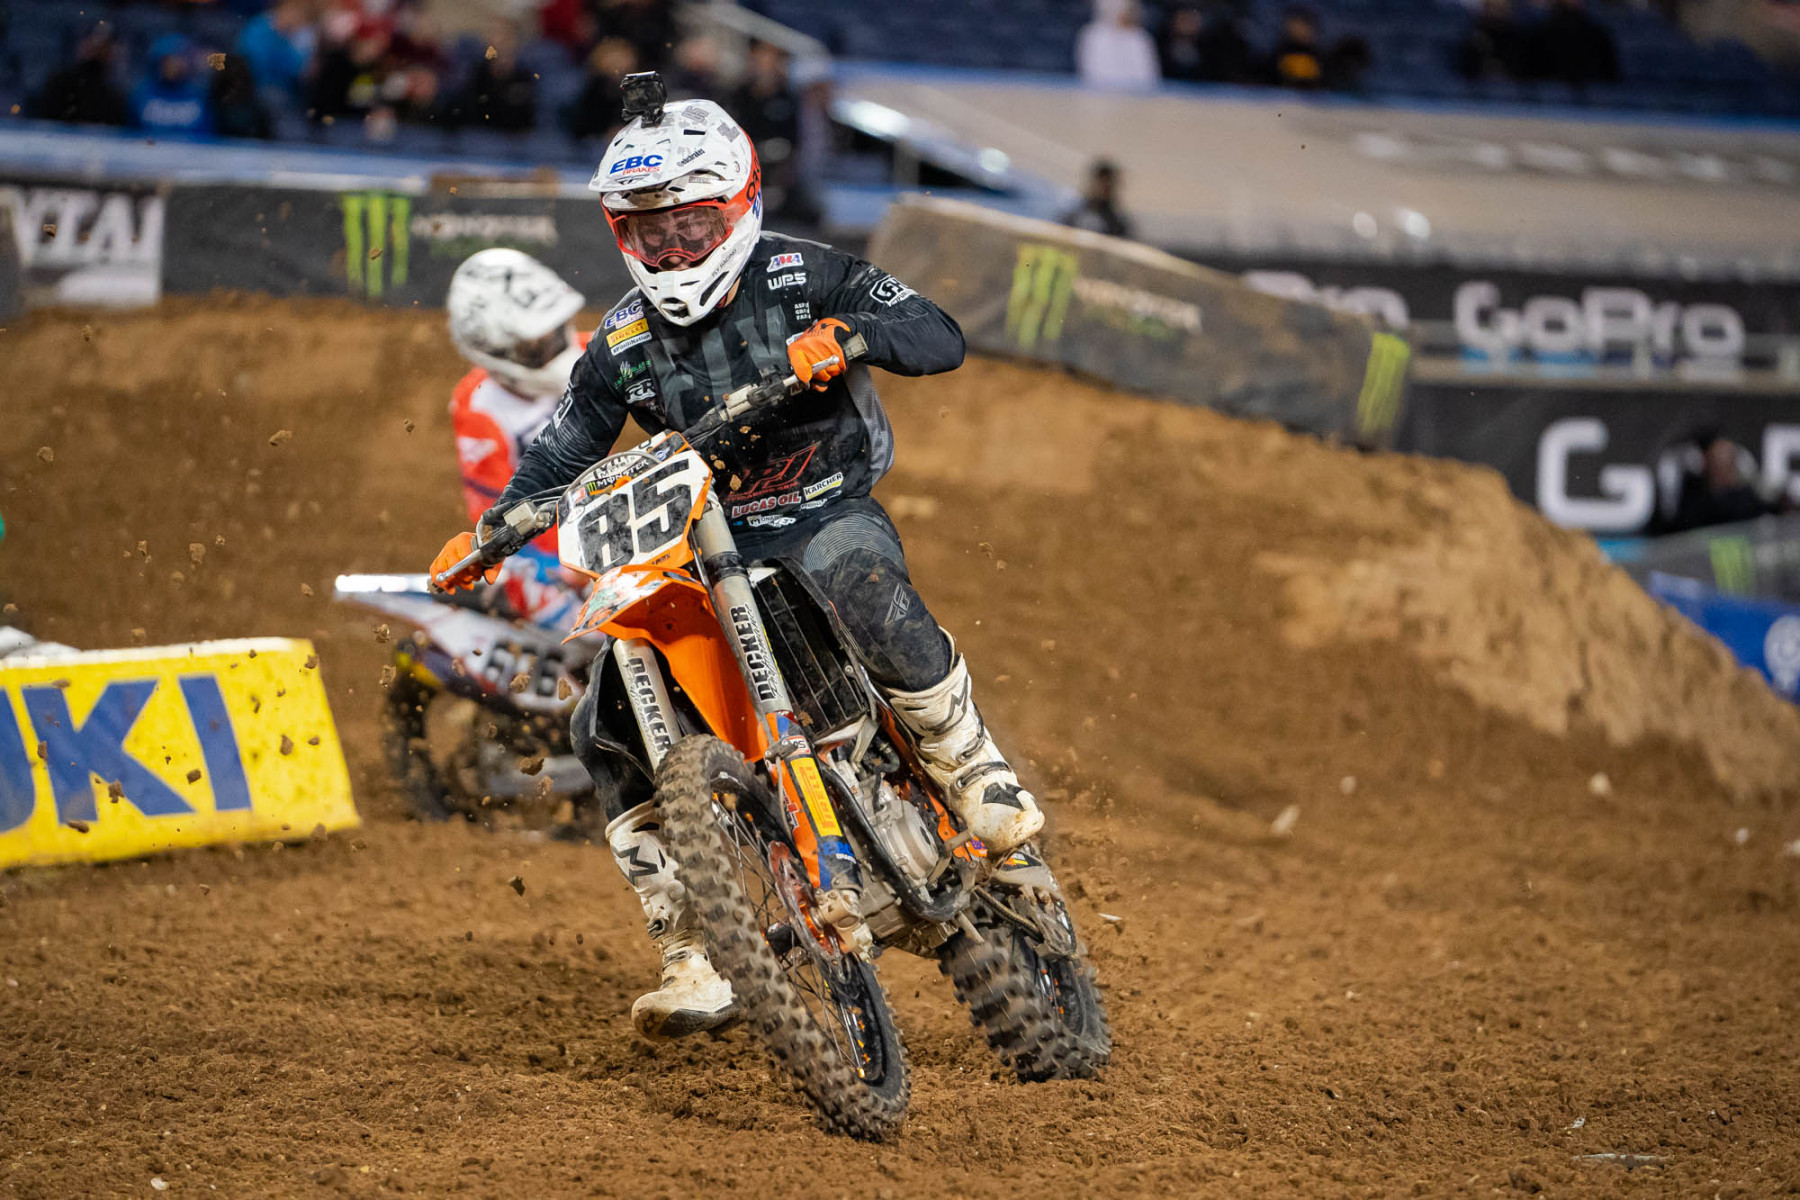 2021-ORLANDO-TWO-SUPERCROSS_KICKSTART_1533